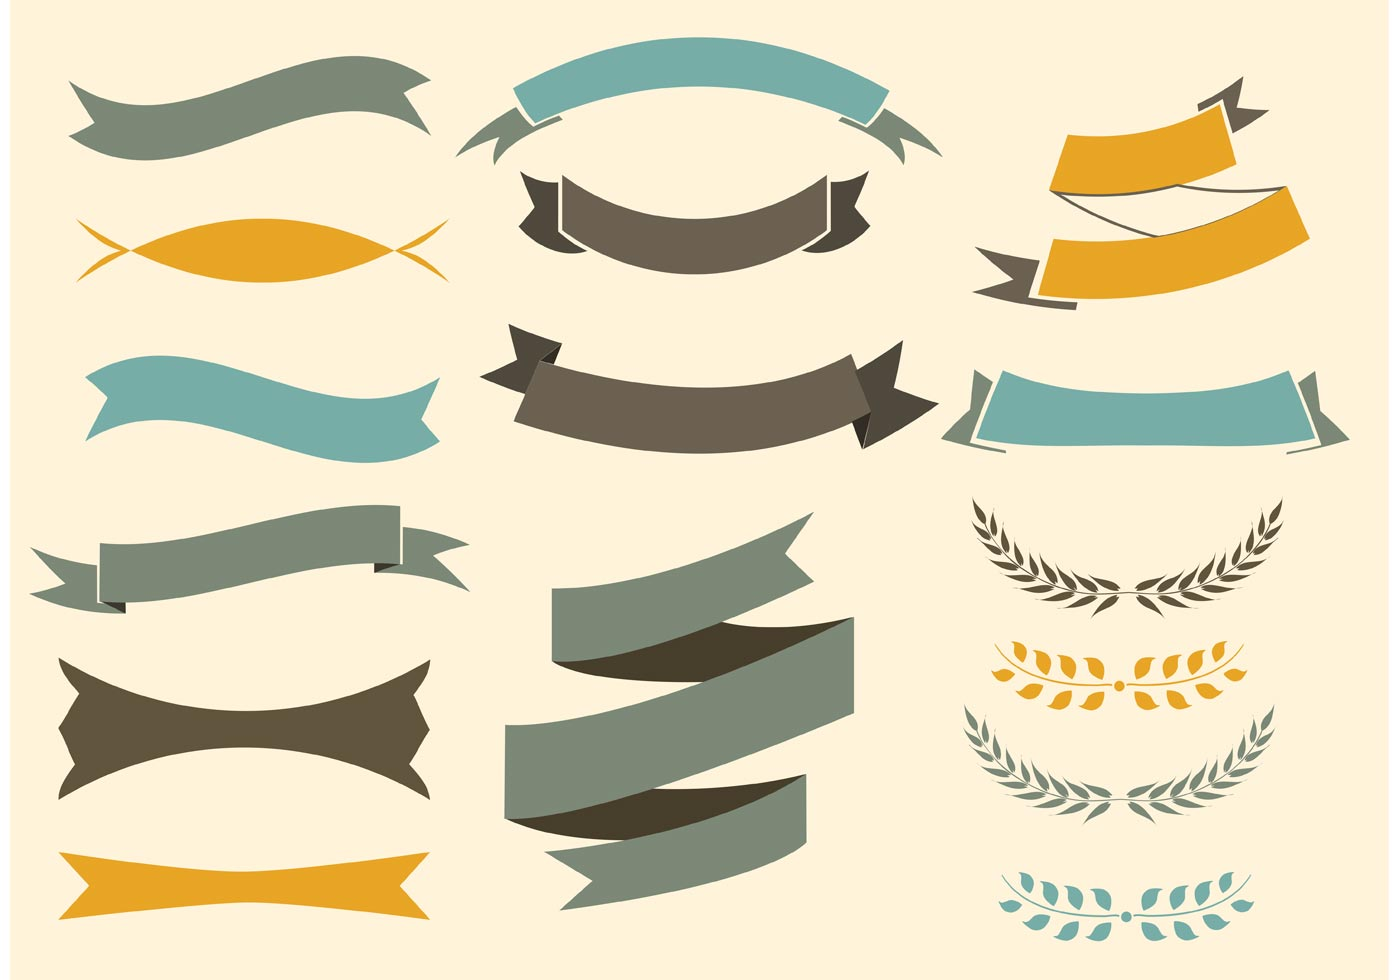 Free Vector Ribbons Set - Download Free Vector Art, Stock ...